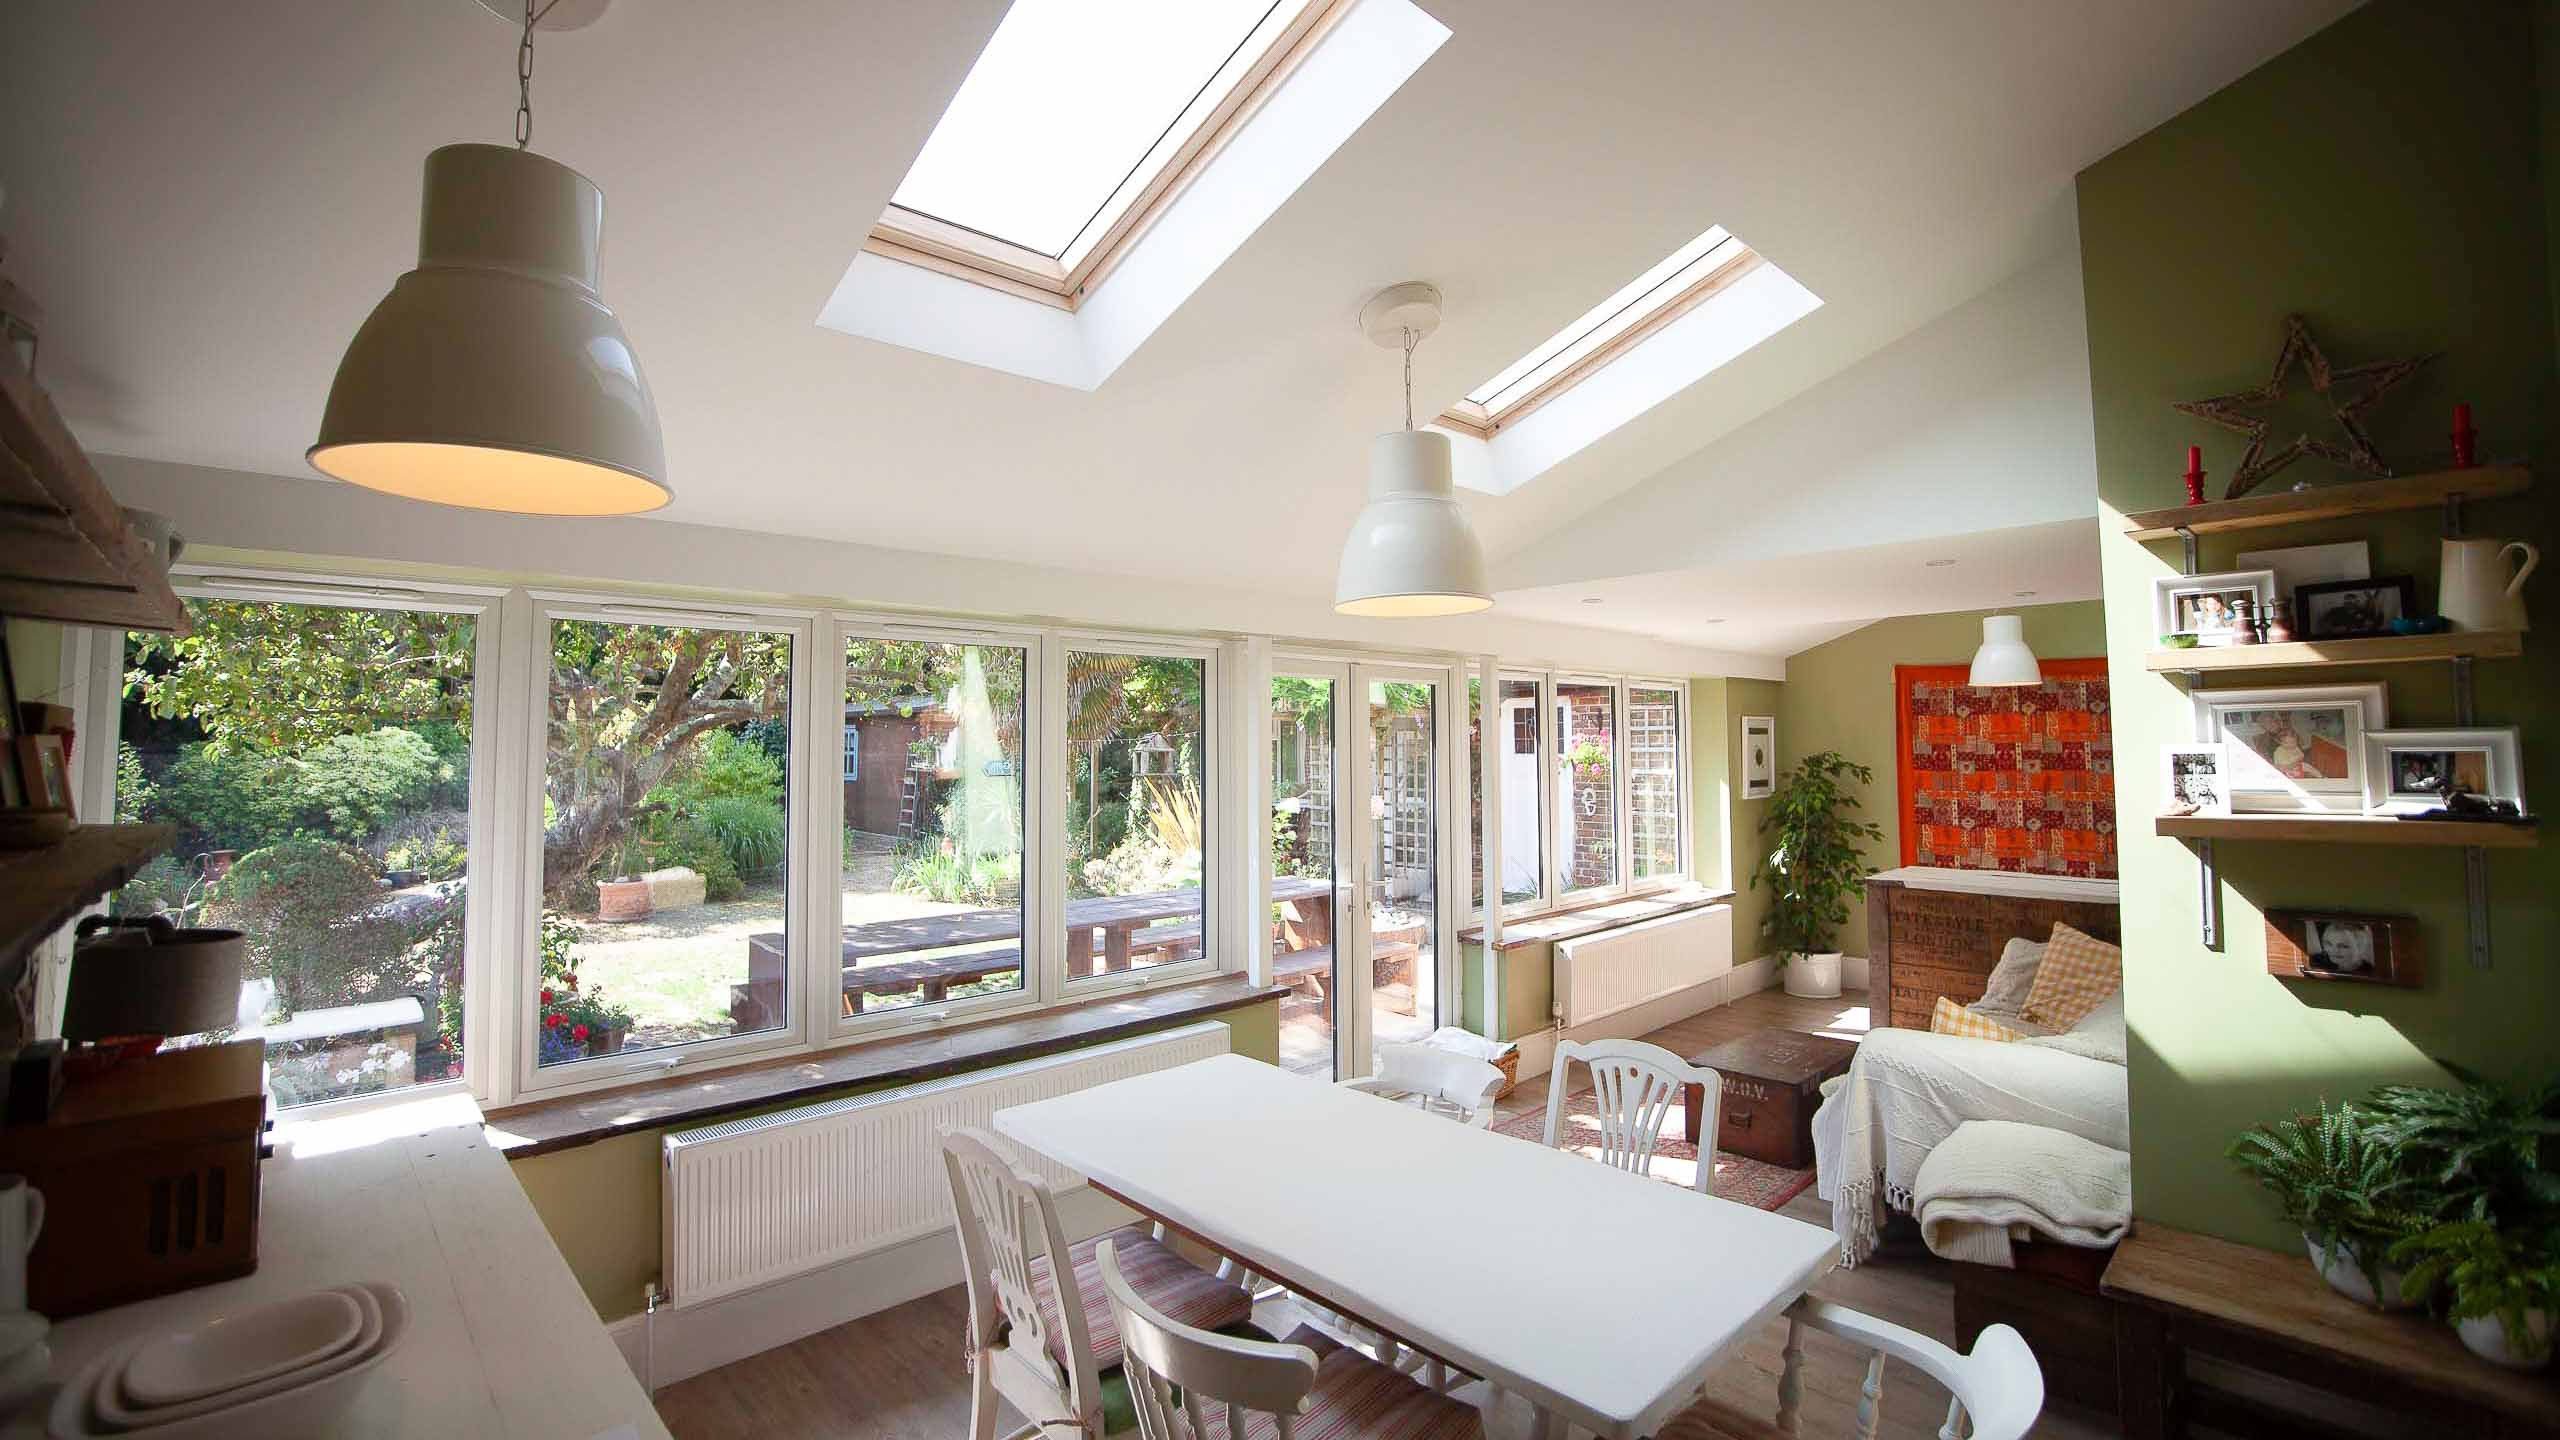 A new rear extension interior with skylights and double glazing - all building services by RJ Steeles builders in Sussex